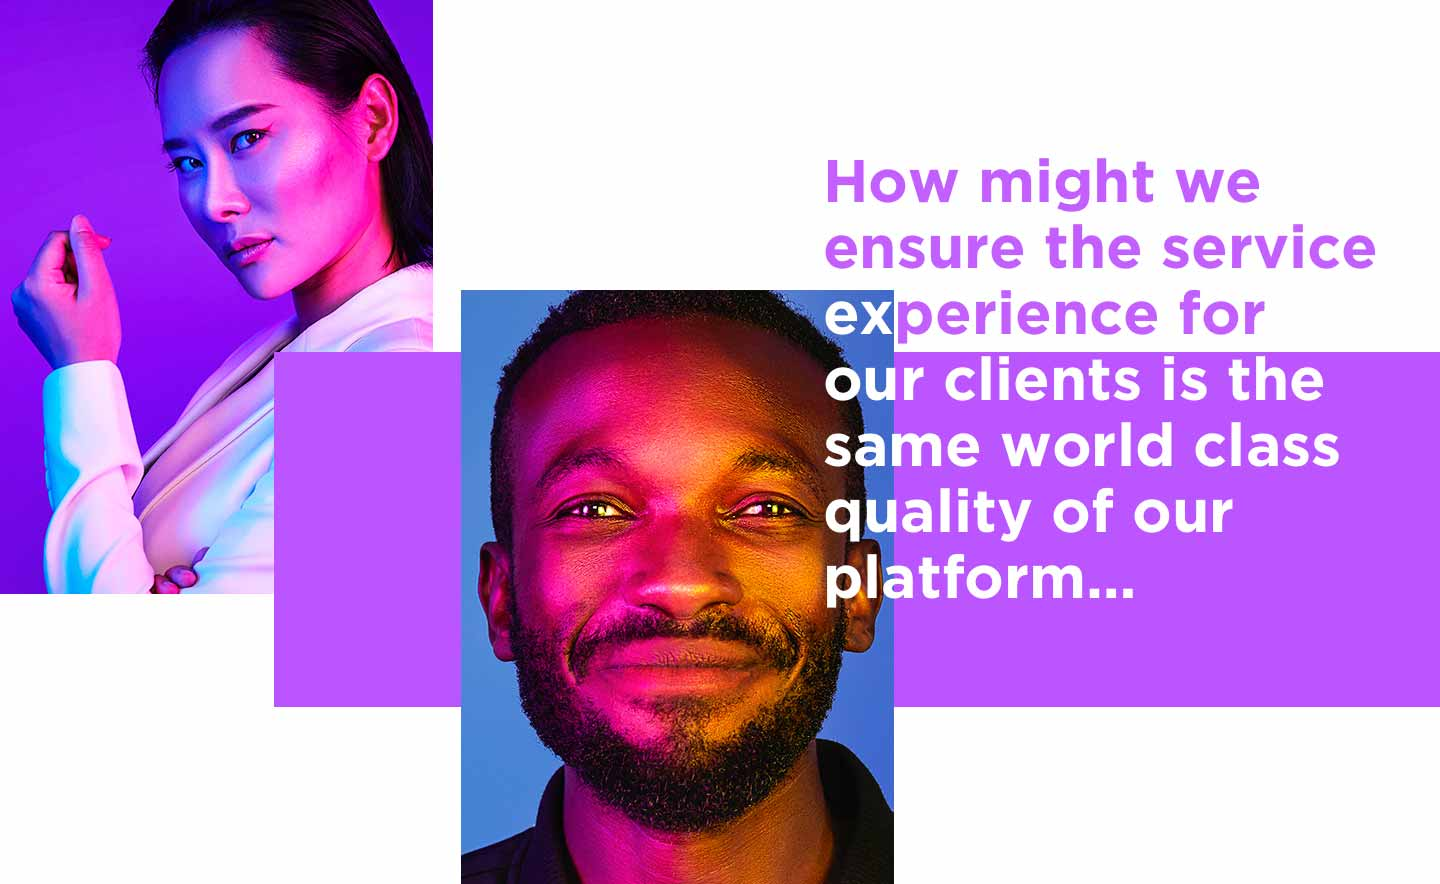 How might we ensure the service experience for our clients is the same world class quality of our platform...